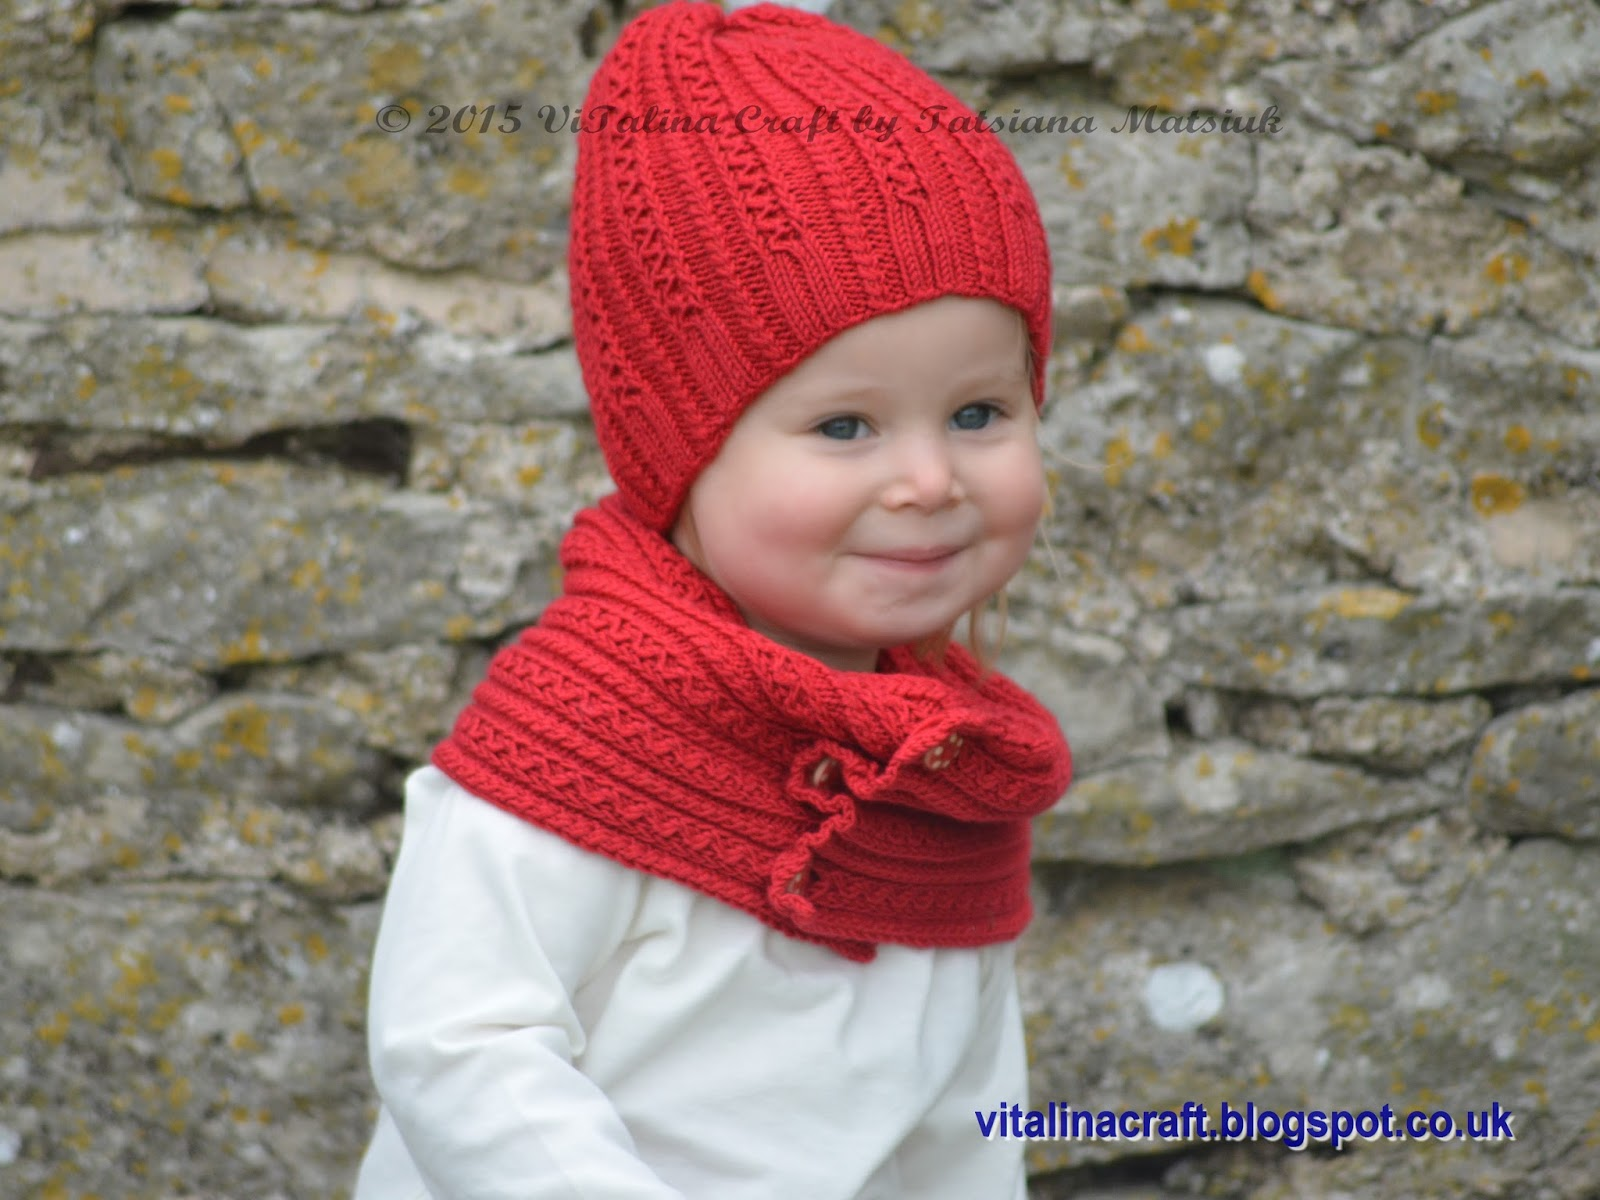 Knitting Pattern - Tiny Cables Hat and Scarf Set (Baby, Child and Adult sizes...